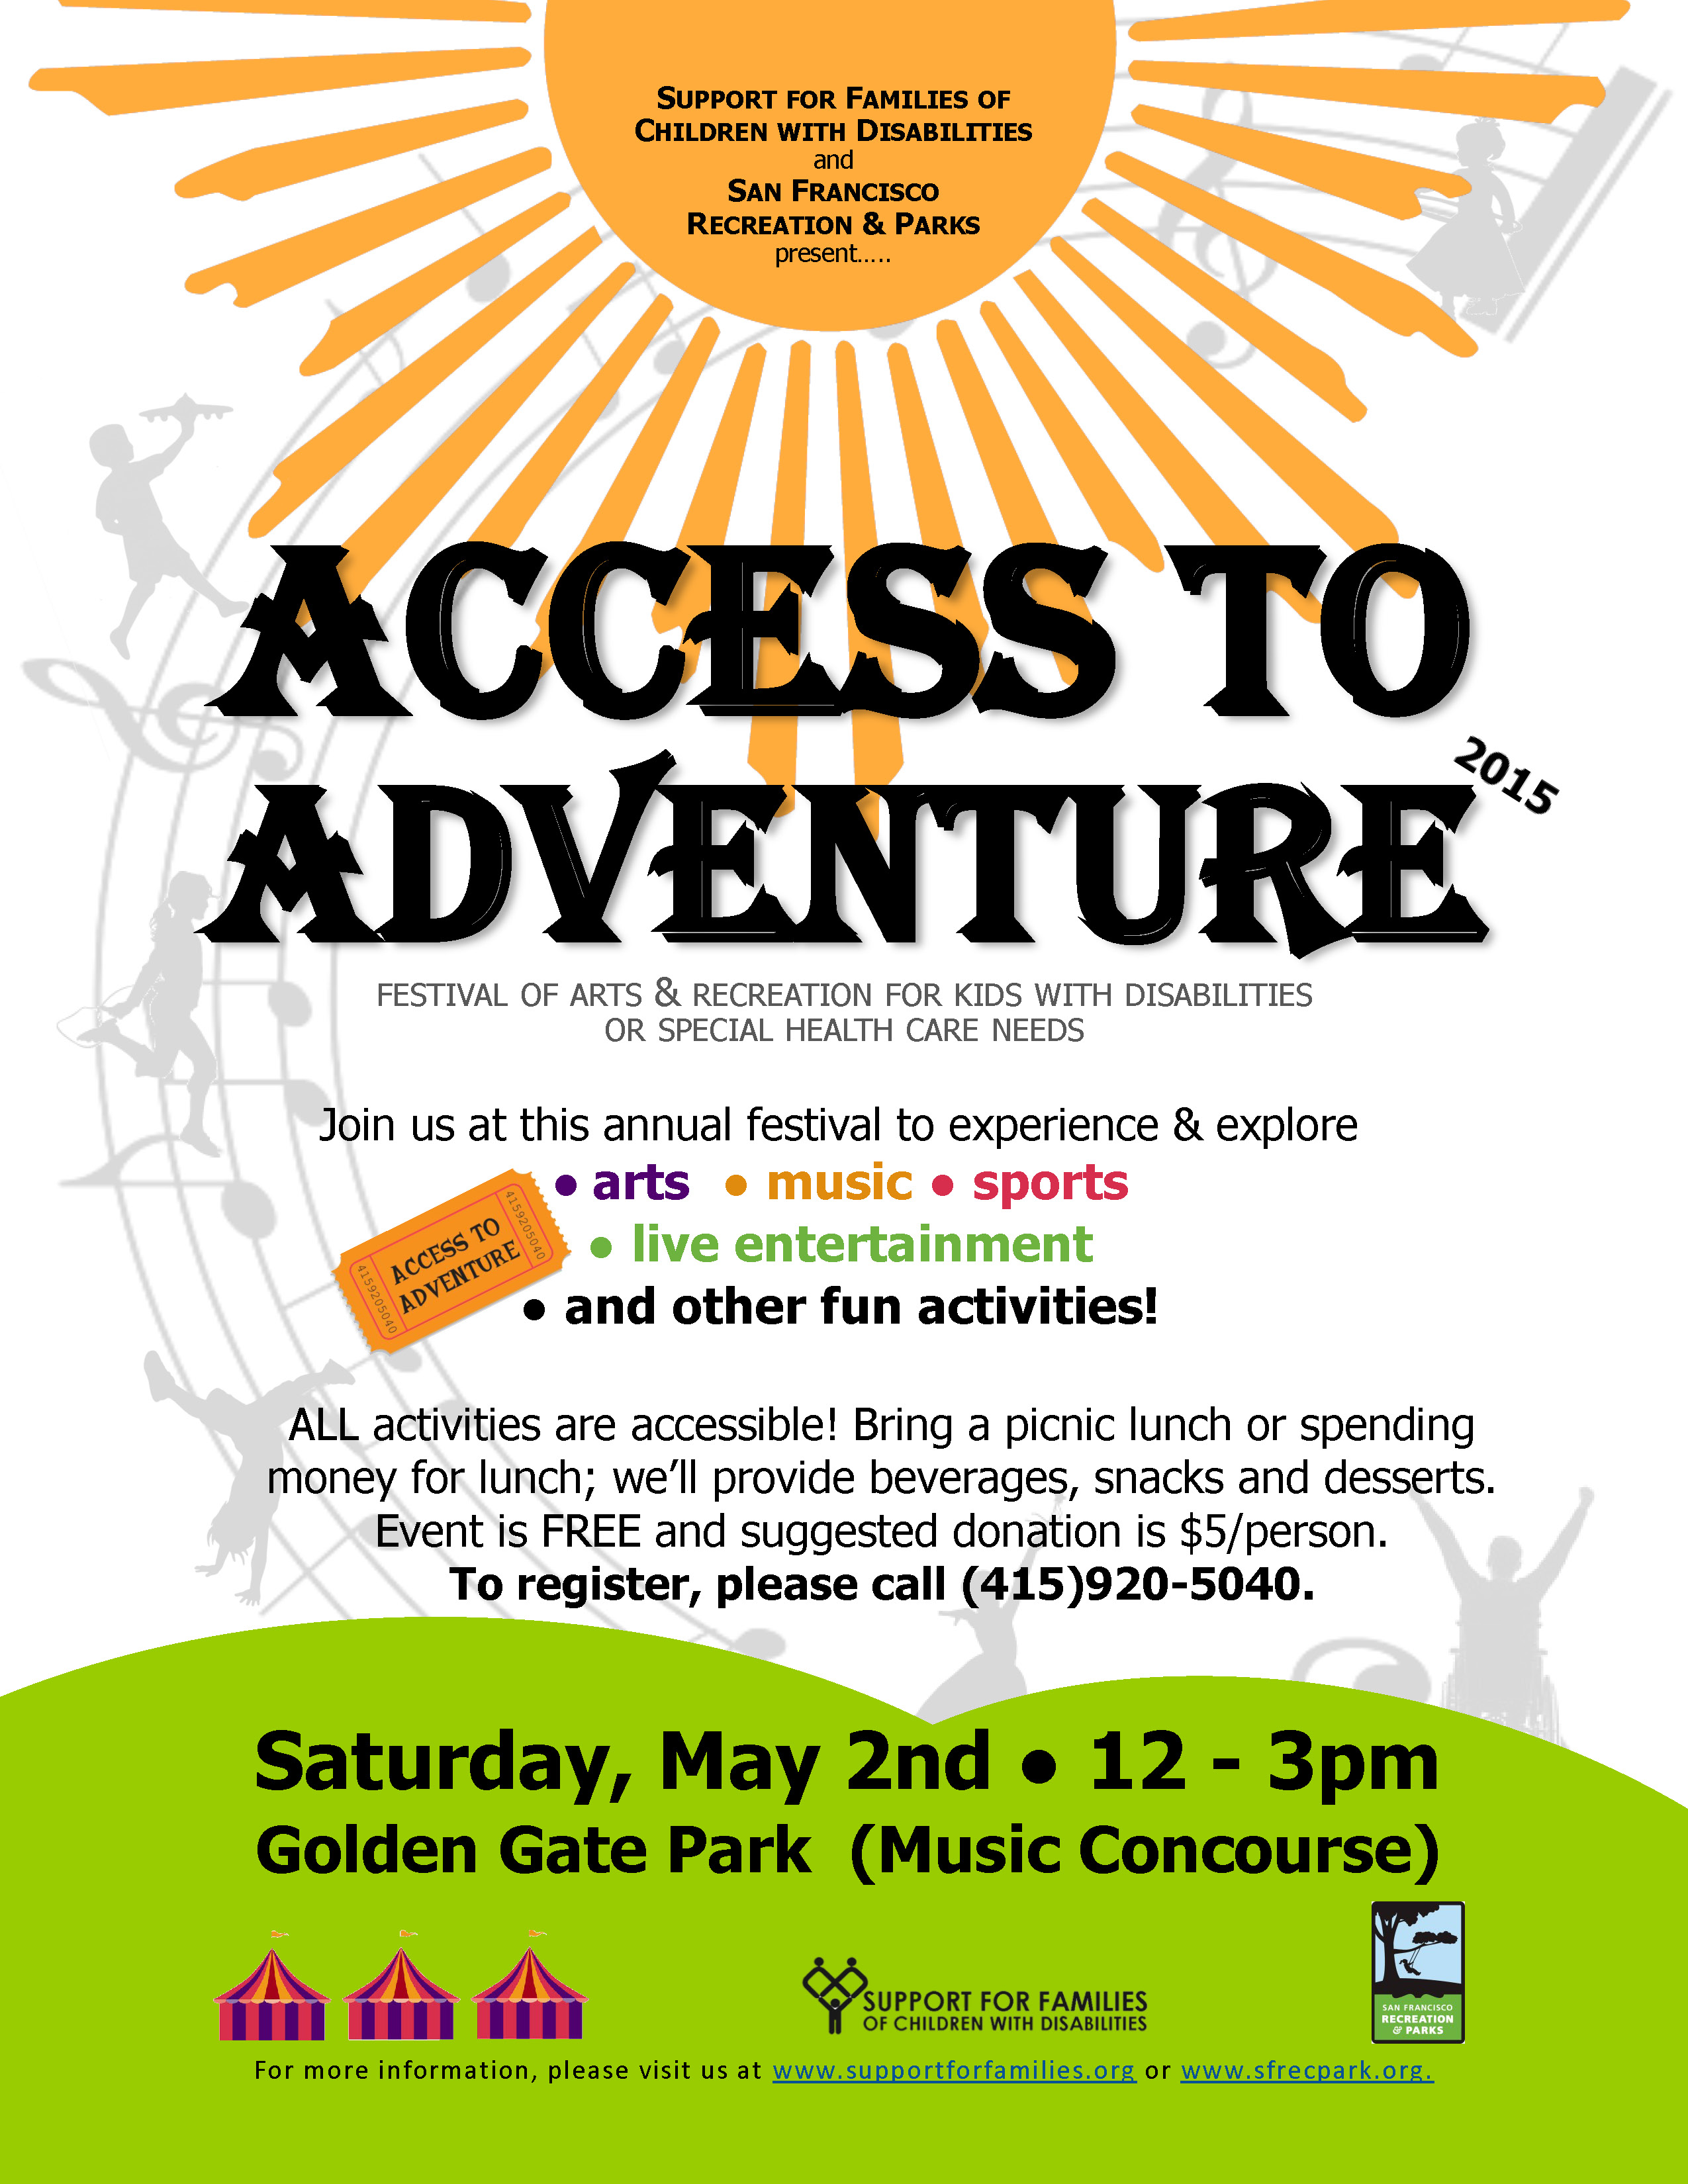 Access To Adventure – May 2nd in Golden Gate Park